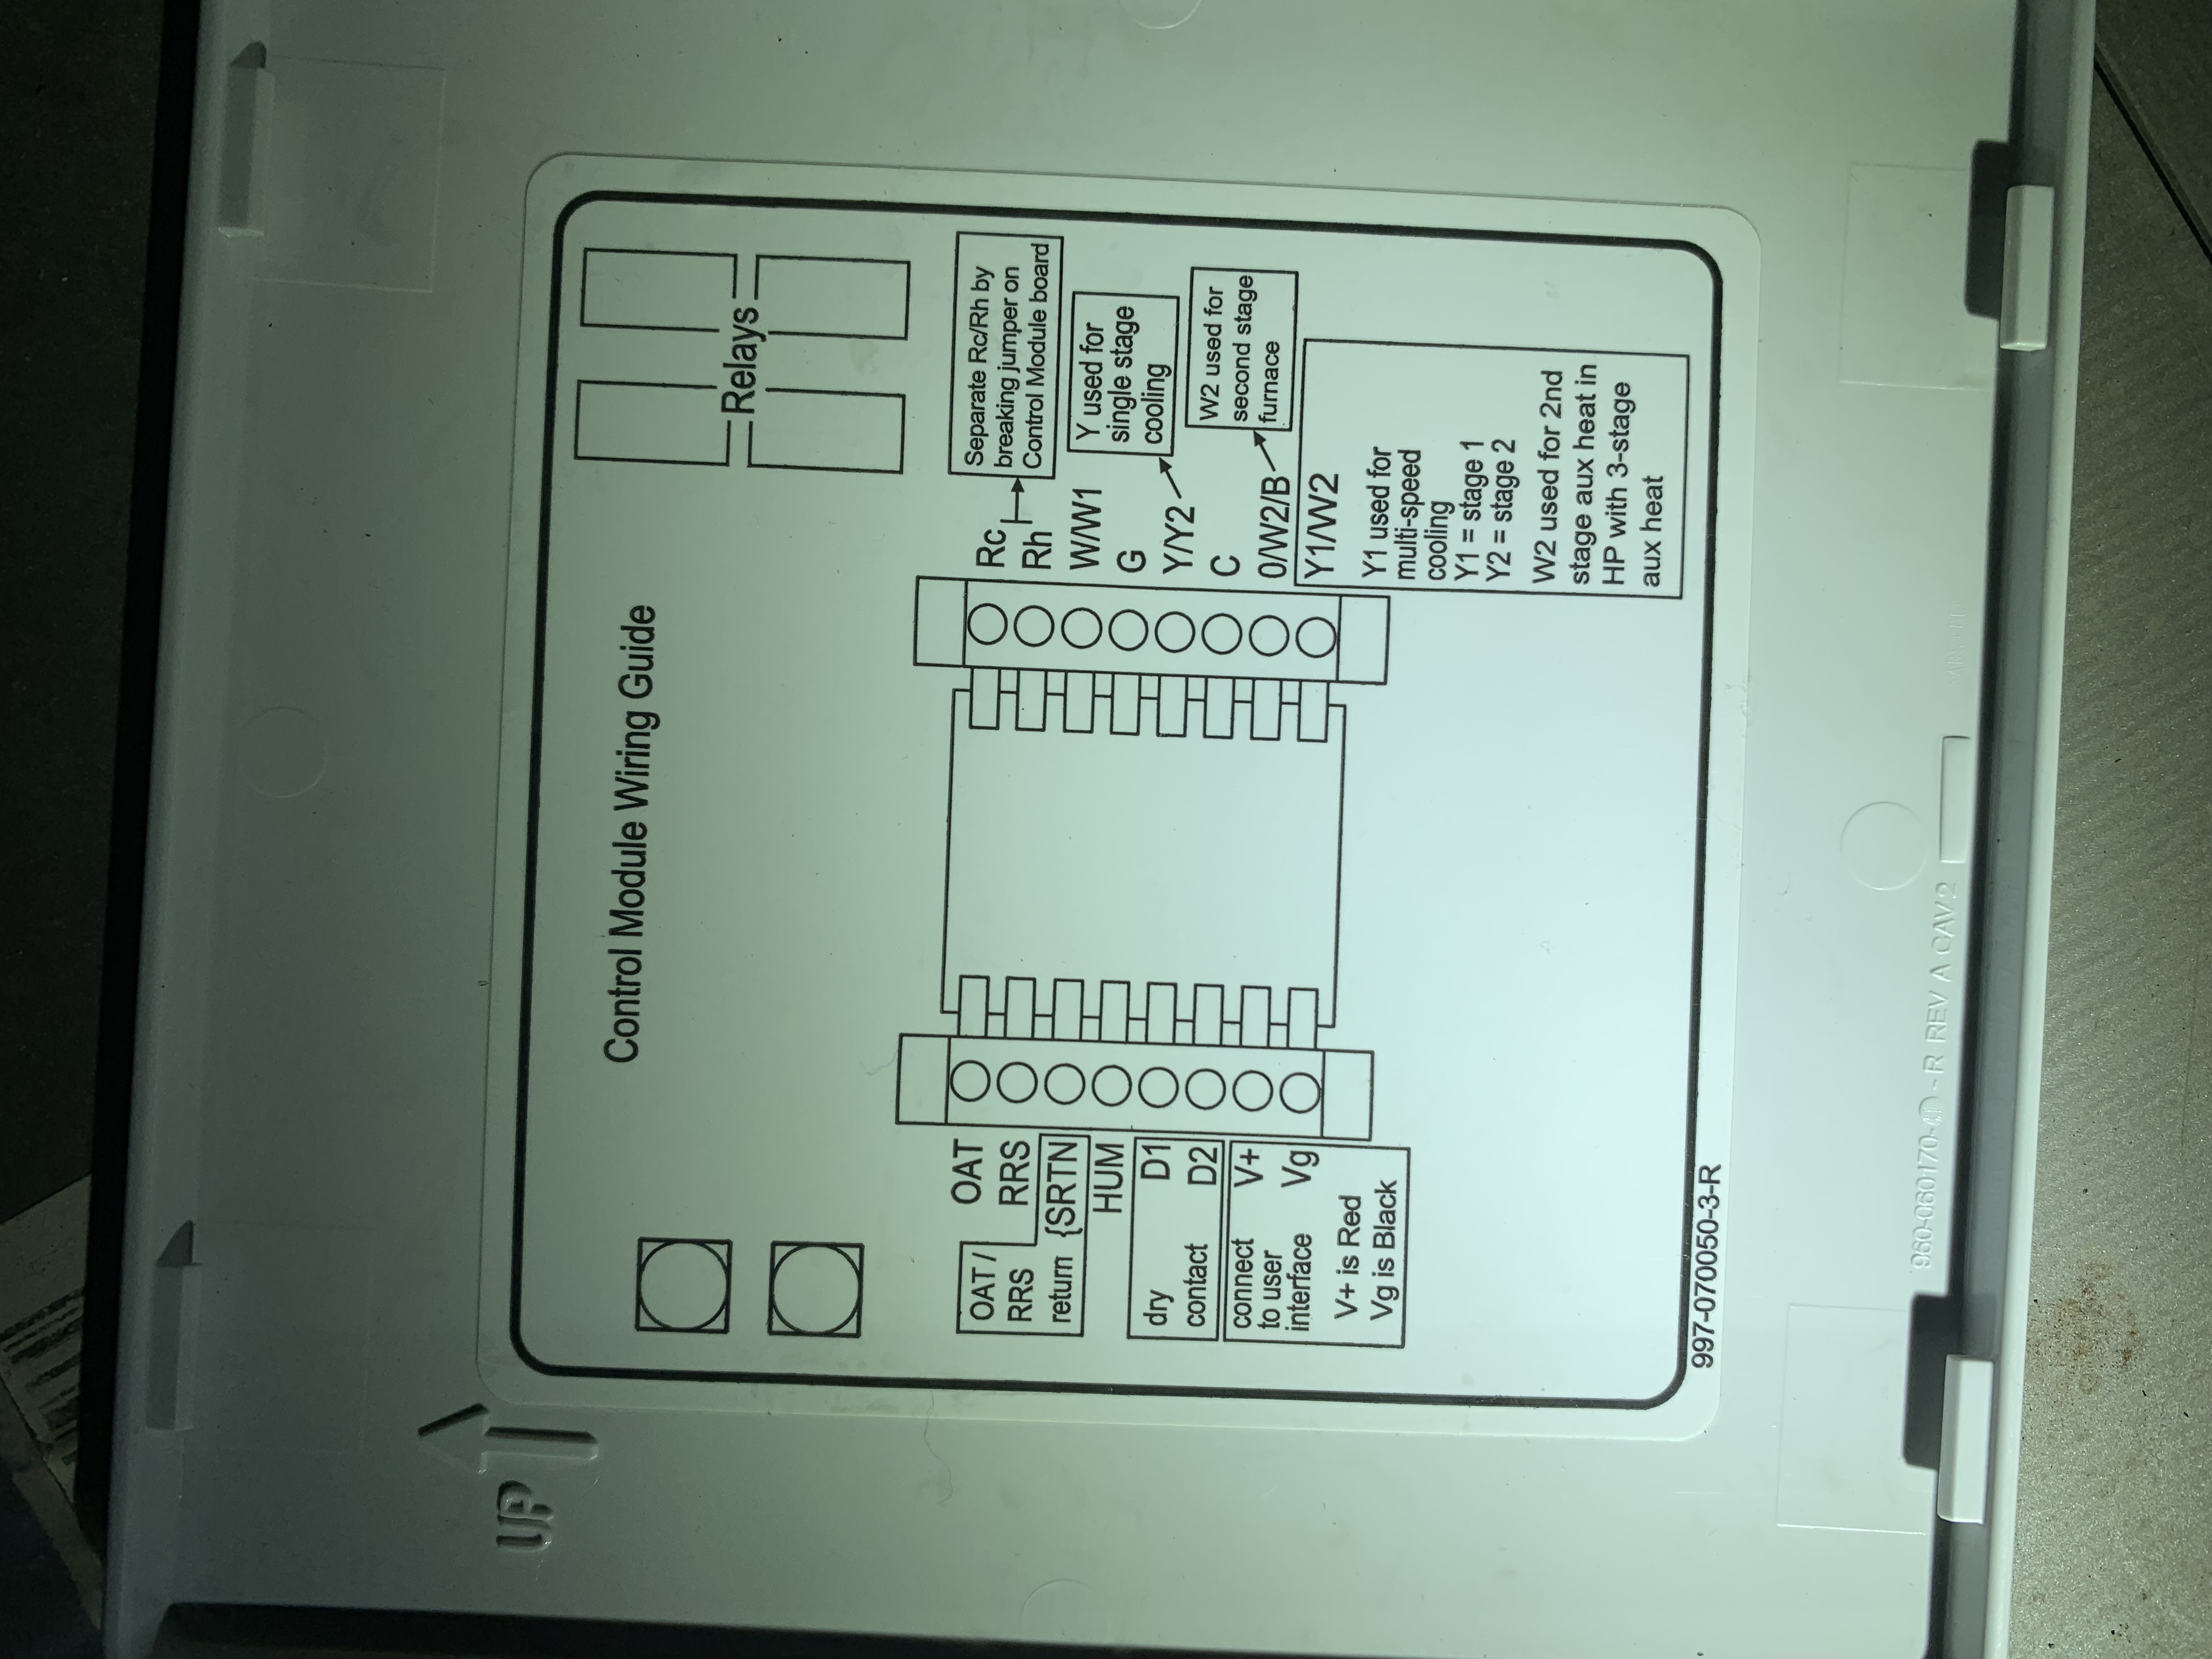 Thermostat Wiring For Ac Unit